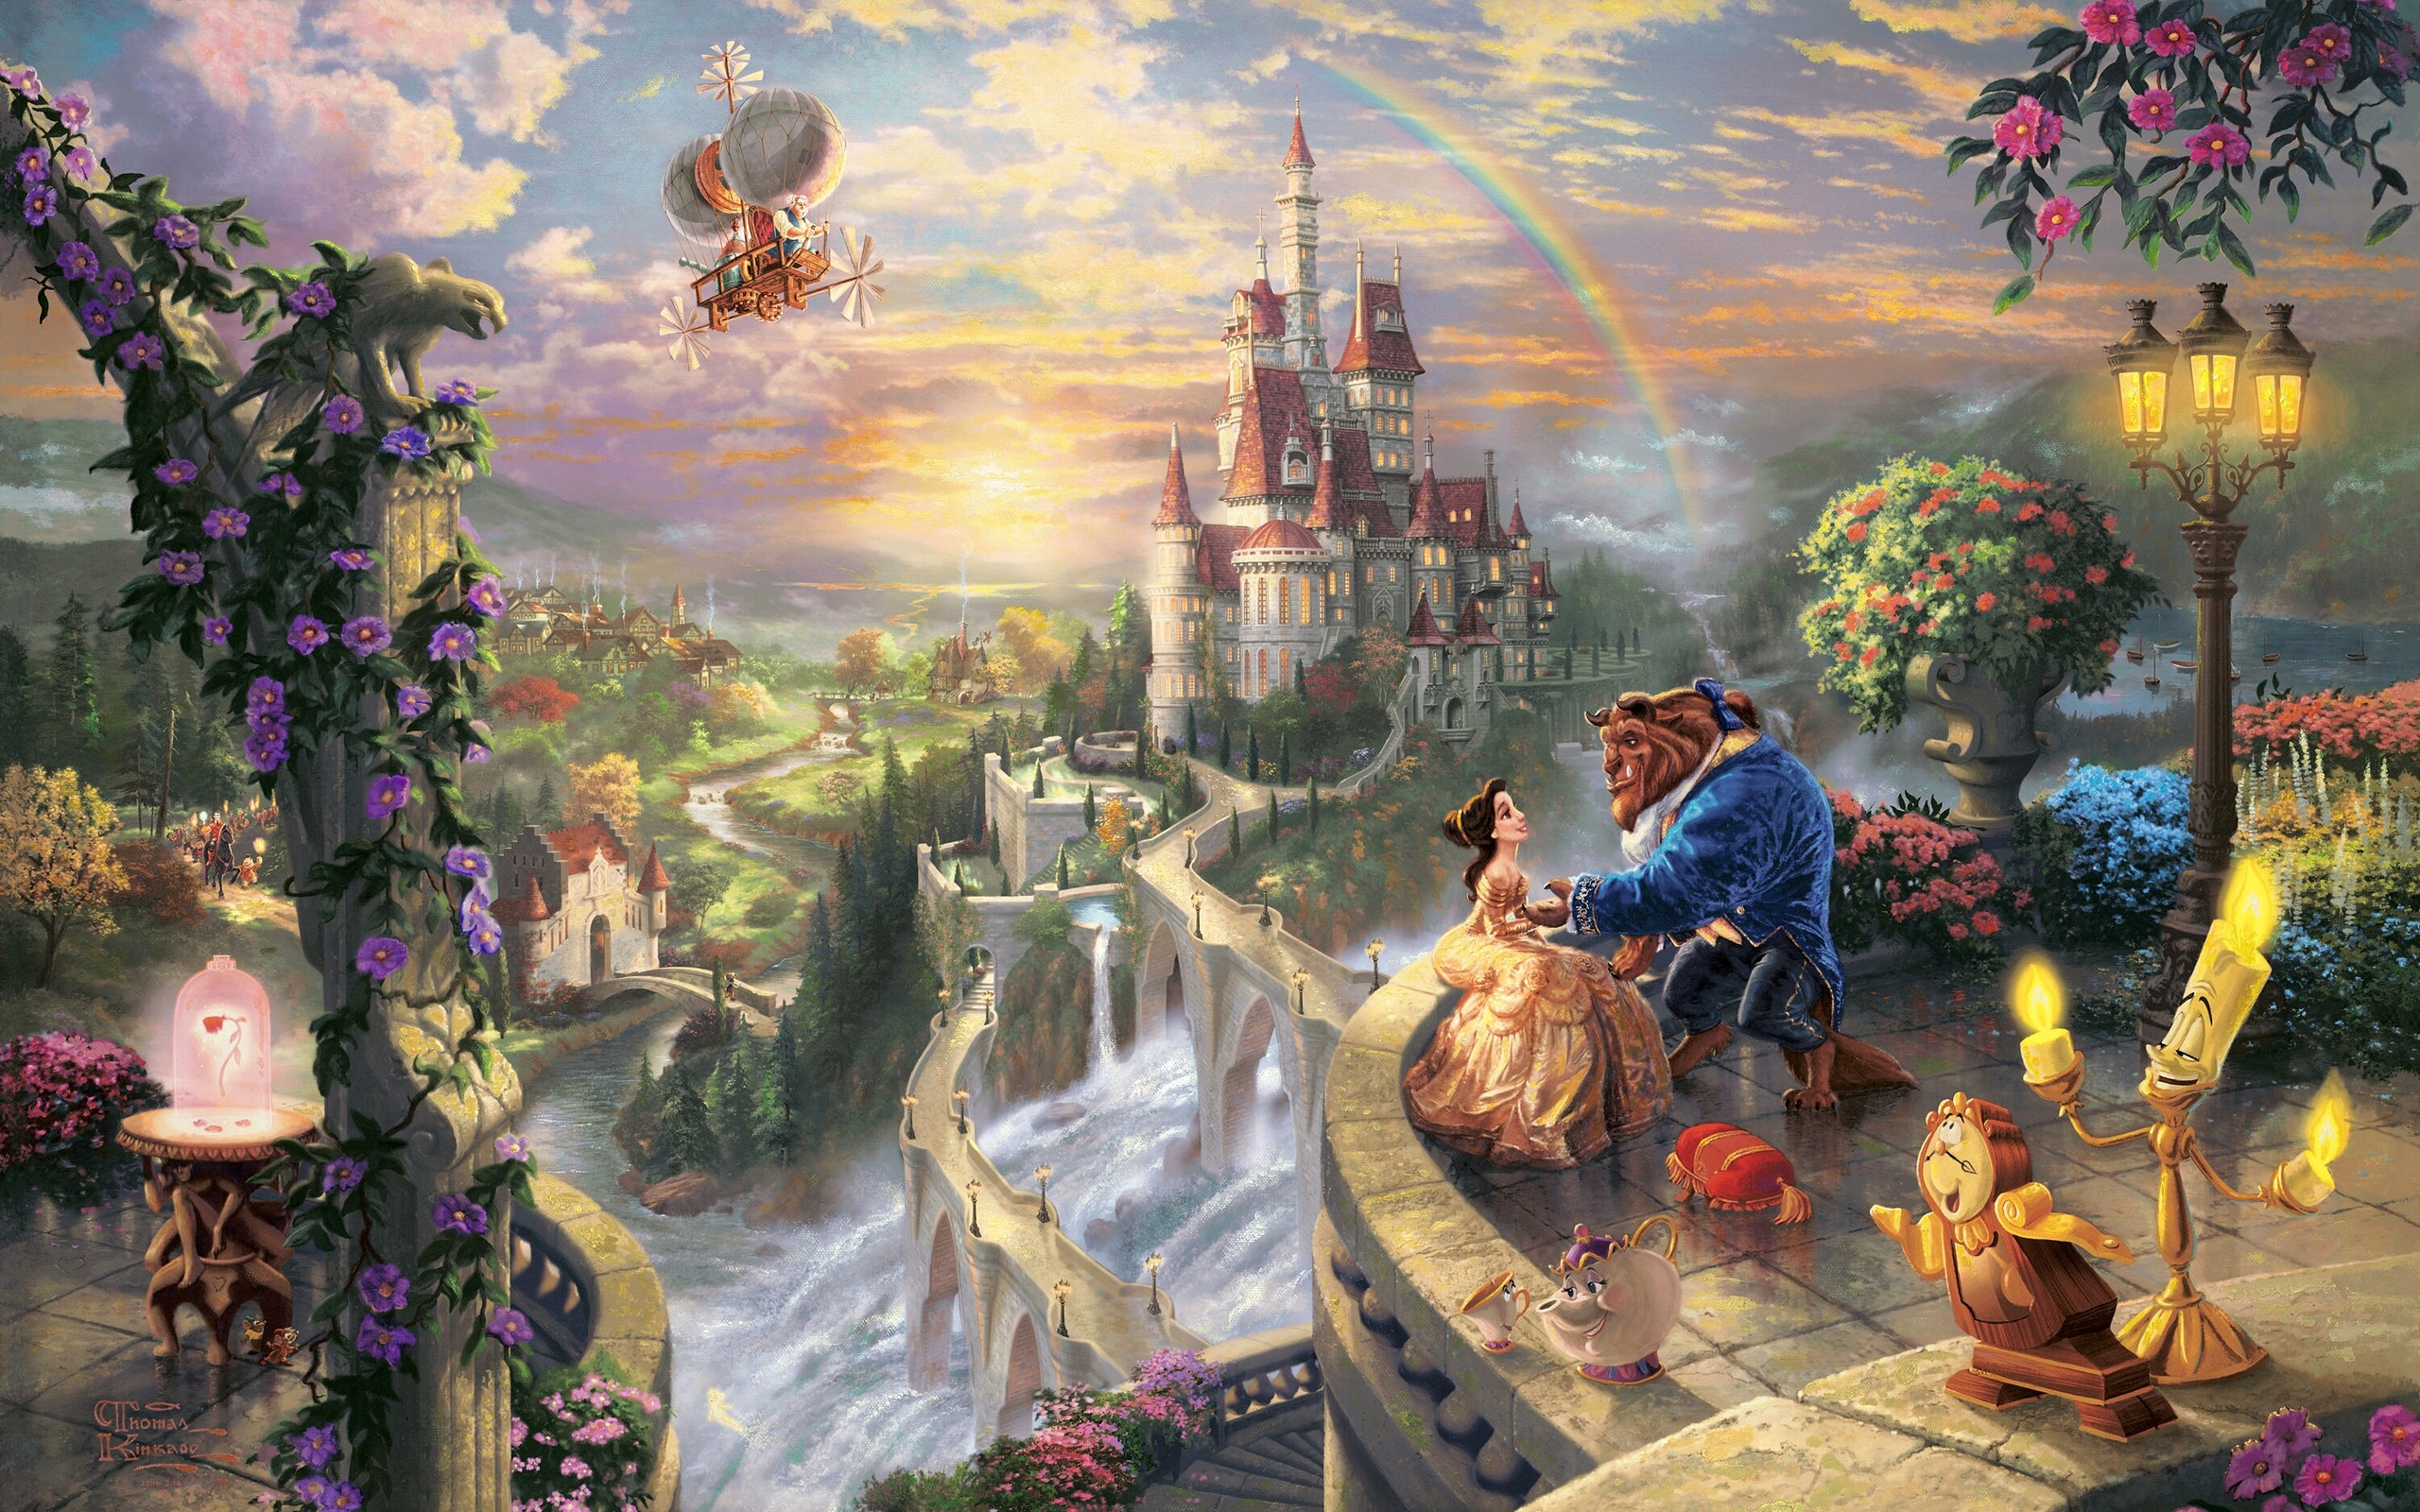 Free Download Disney Movies Wallpaper 2560x1600 For Your